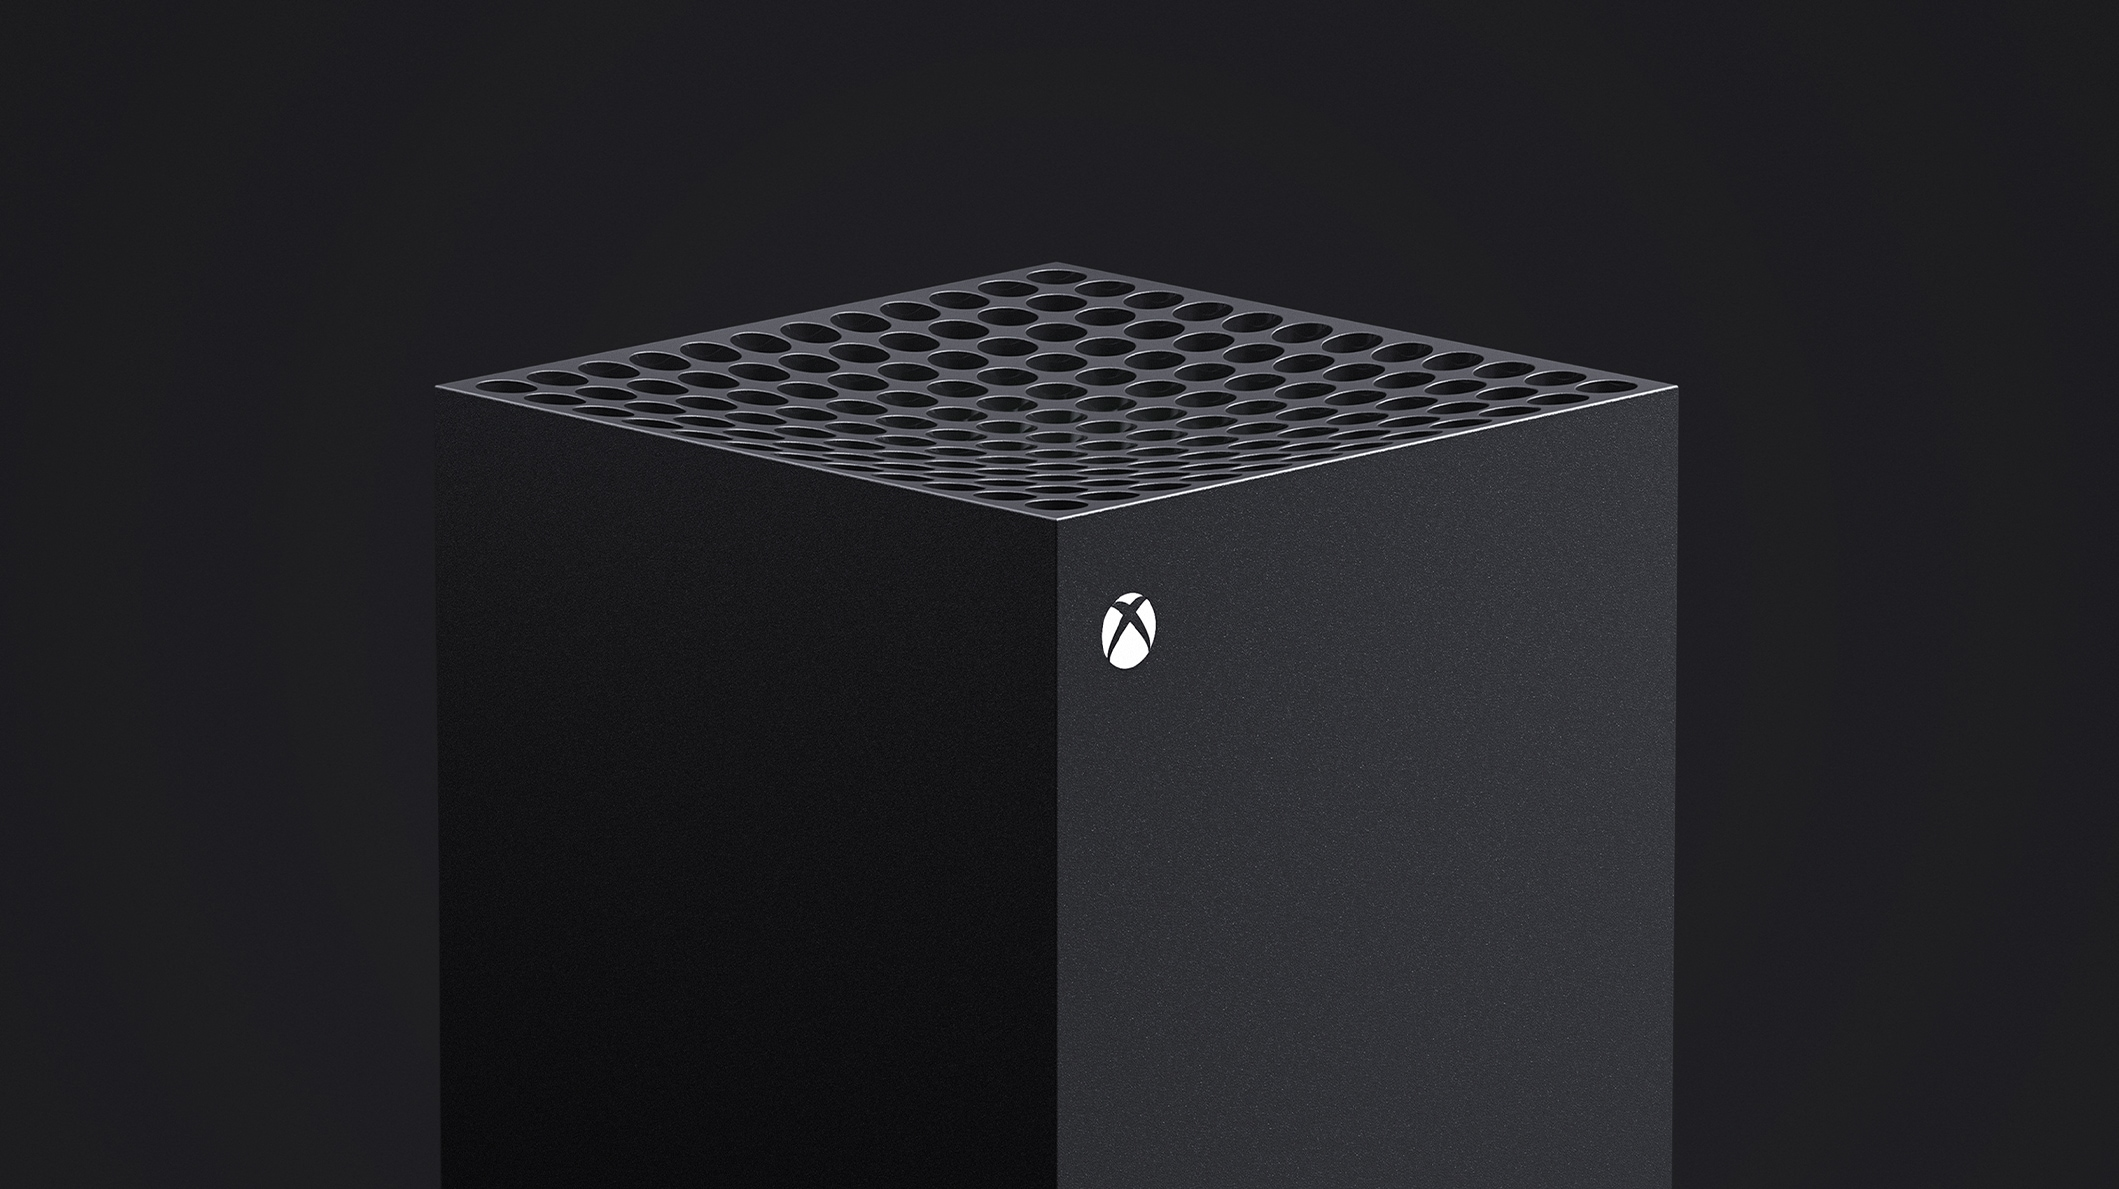 Xbox Series X console top view